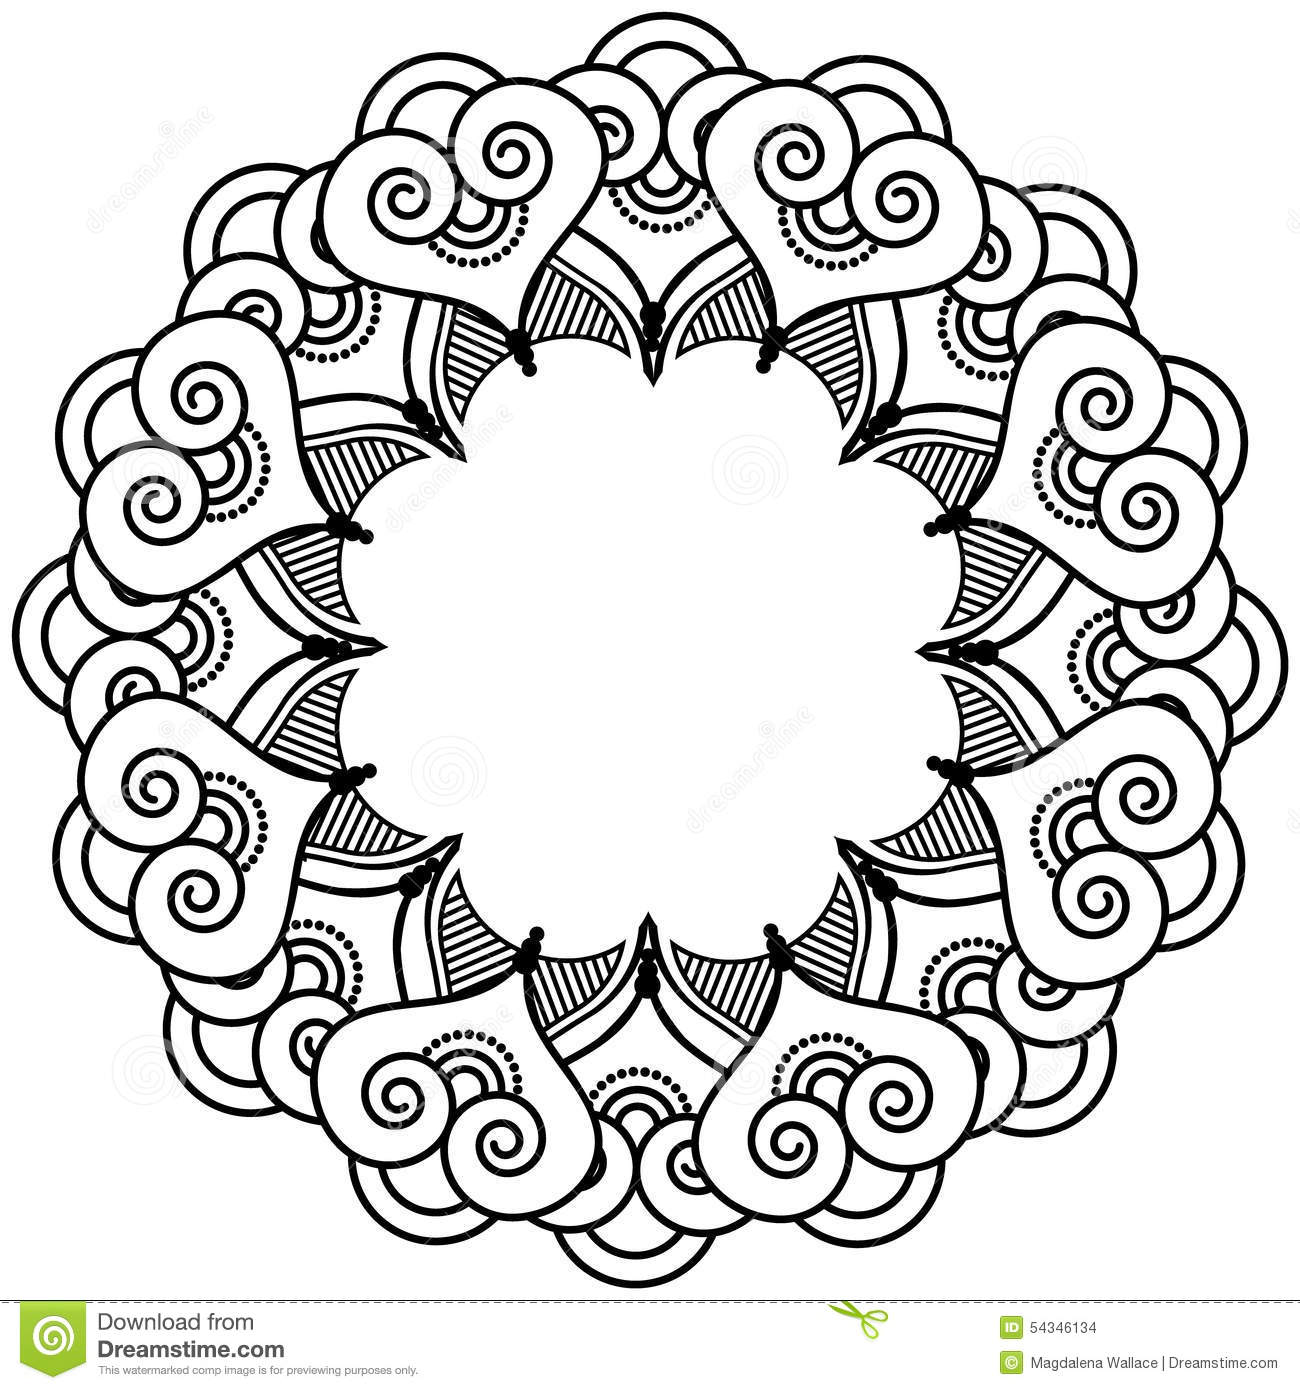 7472cf5f5 Royalty-Free Vector. Indian henna tattoo inspired heart shapes wreath with  leaves element type 2